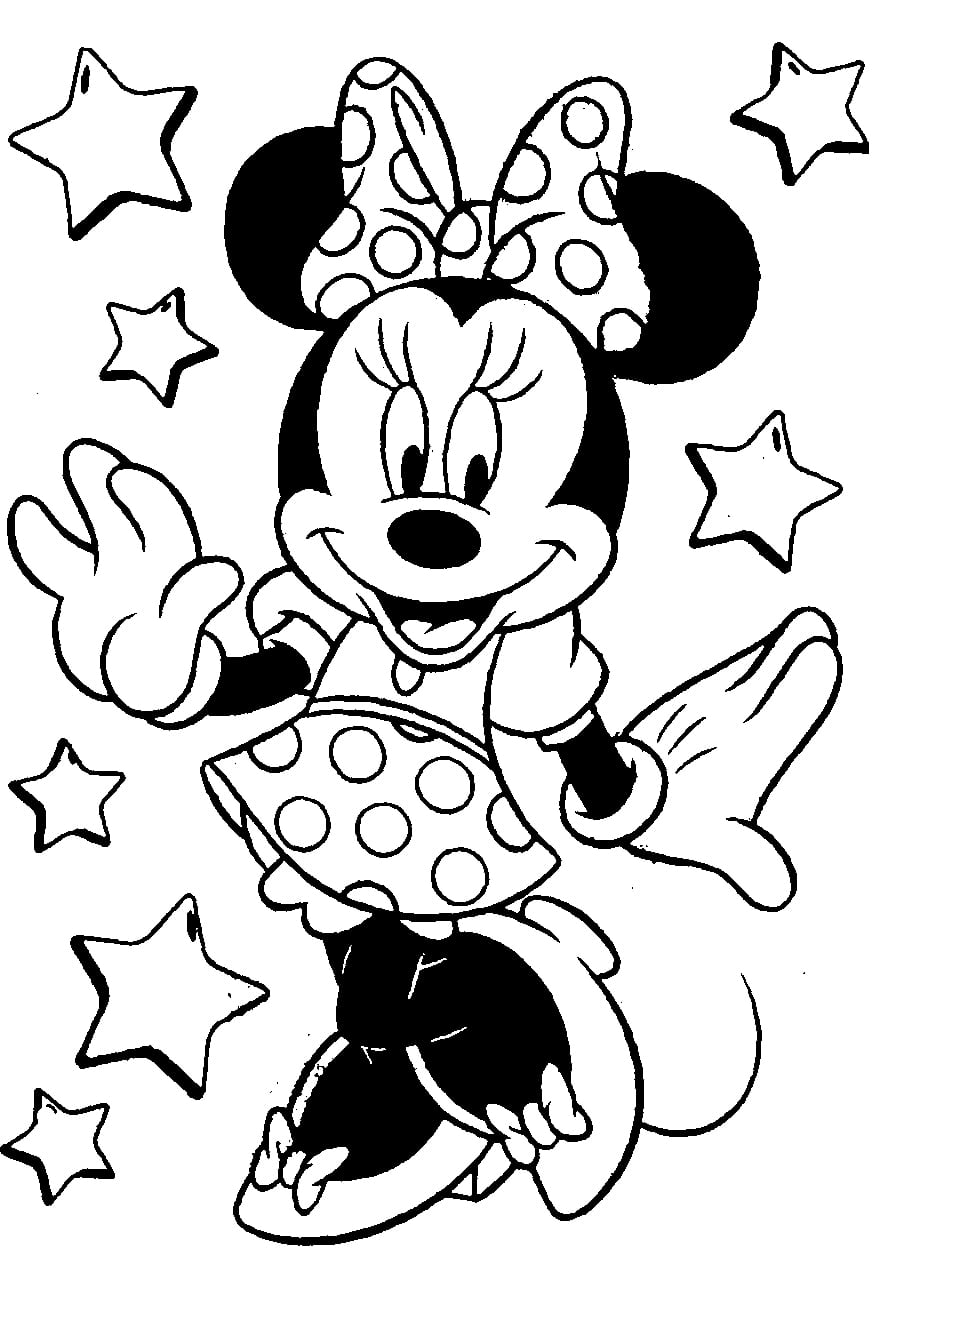 Mickey Mouse Coloring Sheets Pdf » Coloring Pages Kids